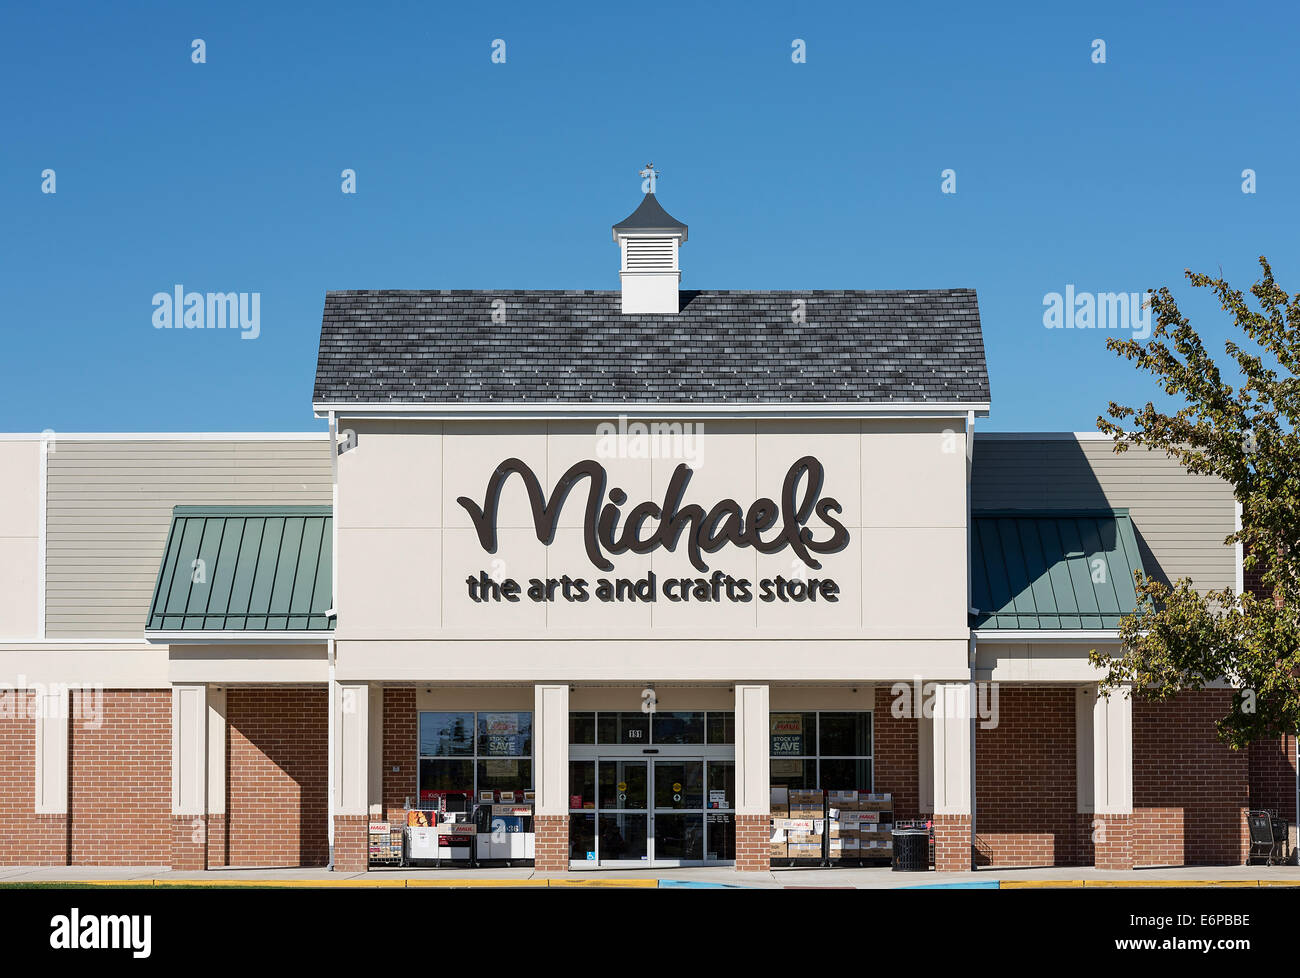 michaels arts and crafts store exterior mt laural new